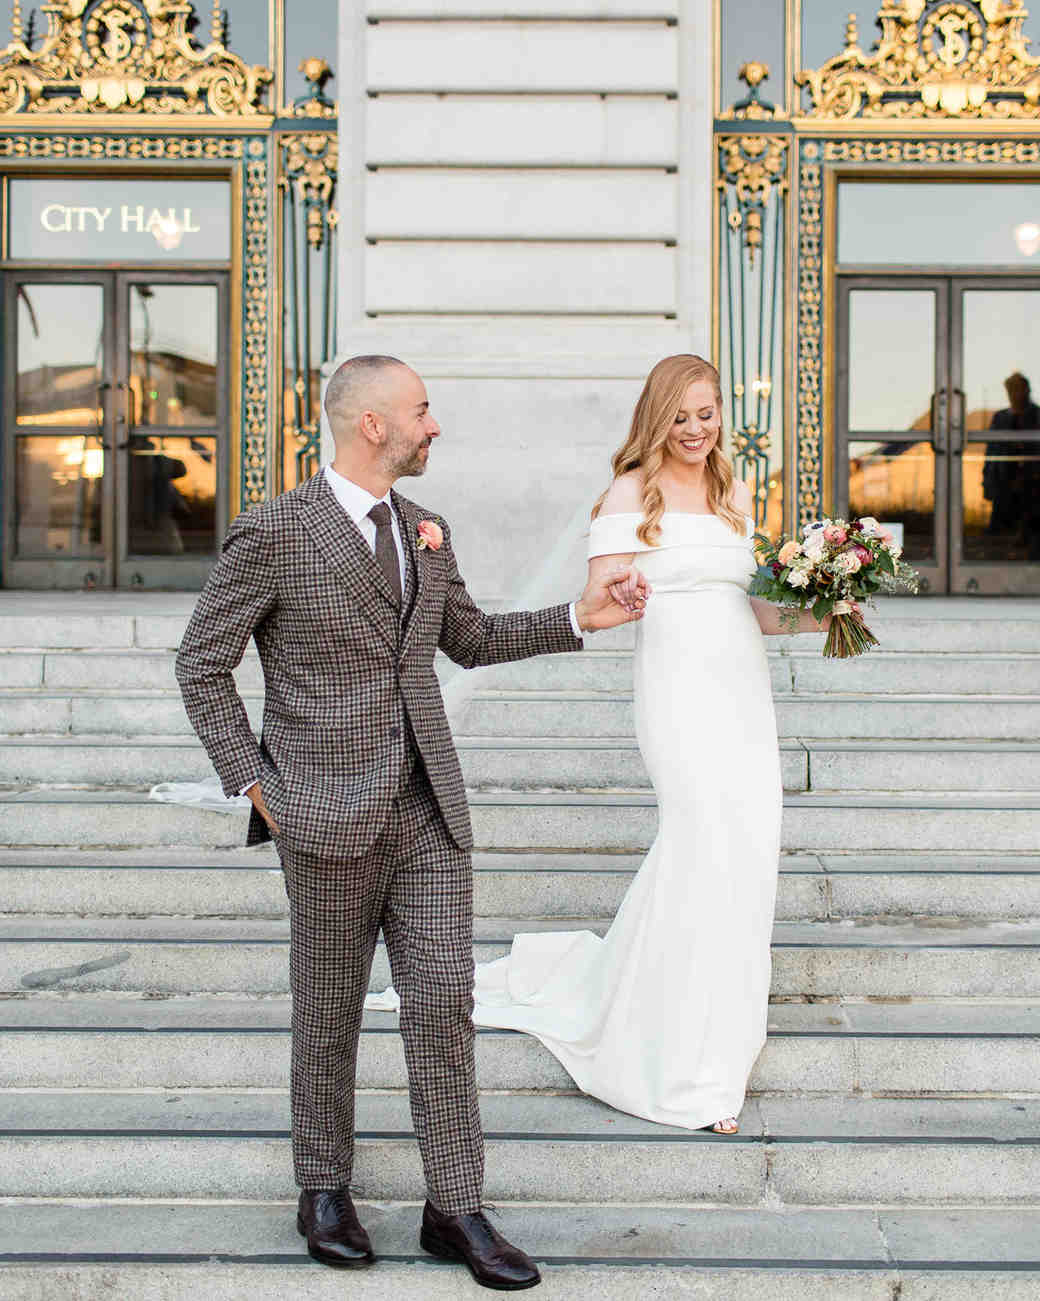 groom wearing plaid brown suit holding bride's hand on city hall steps